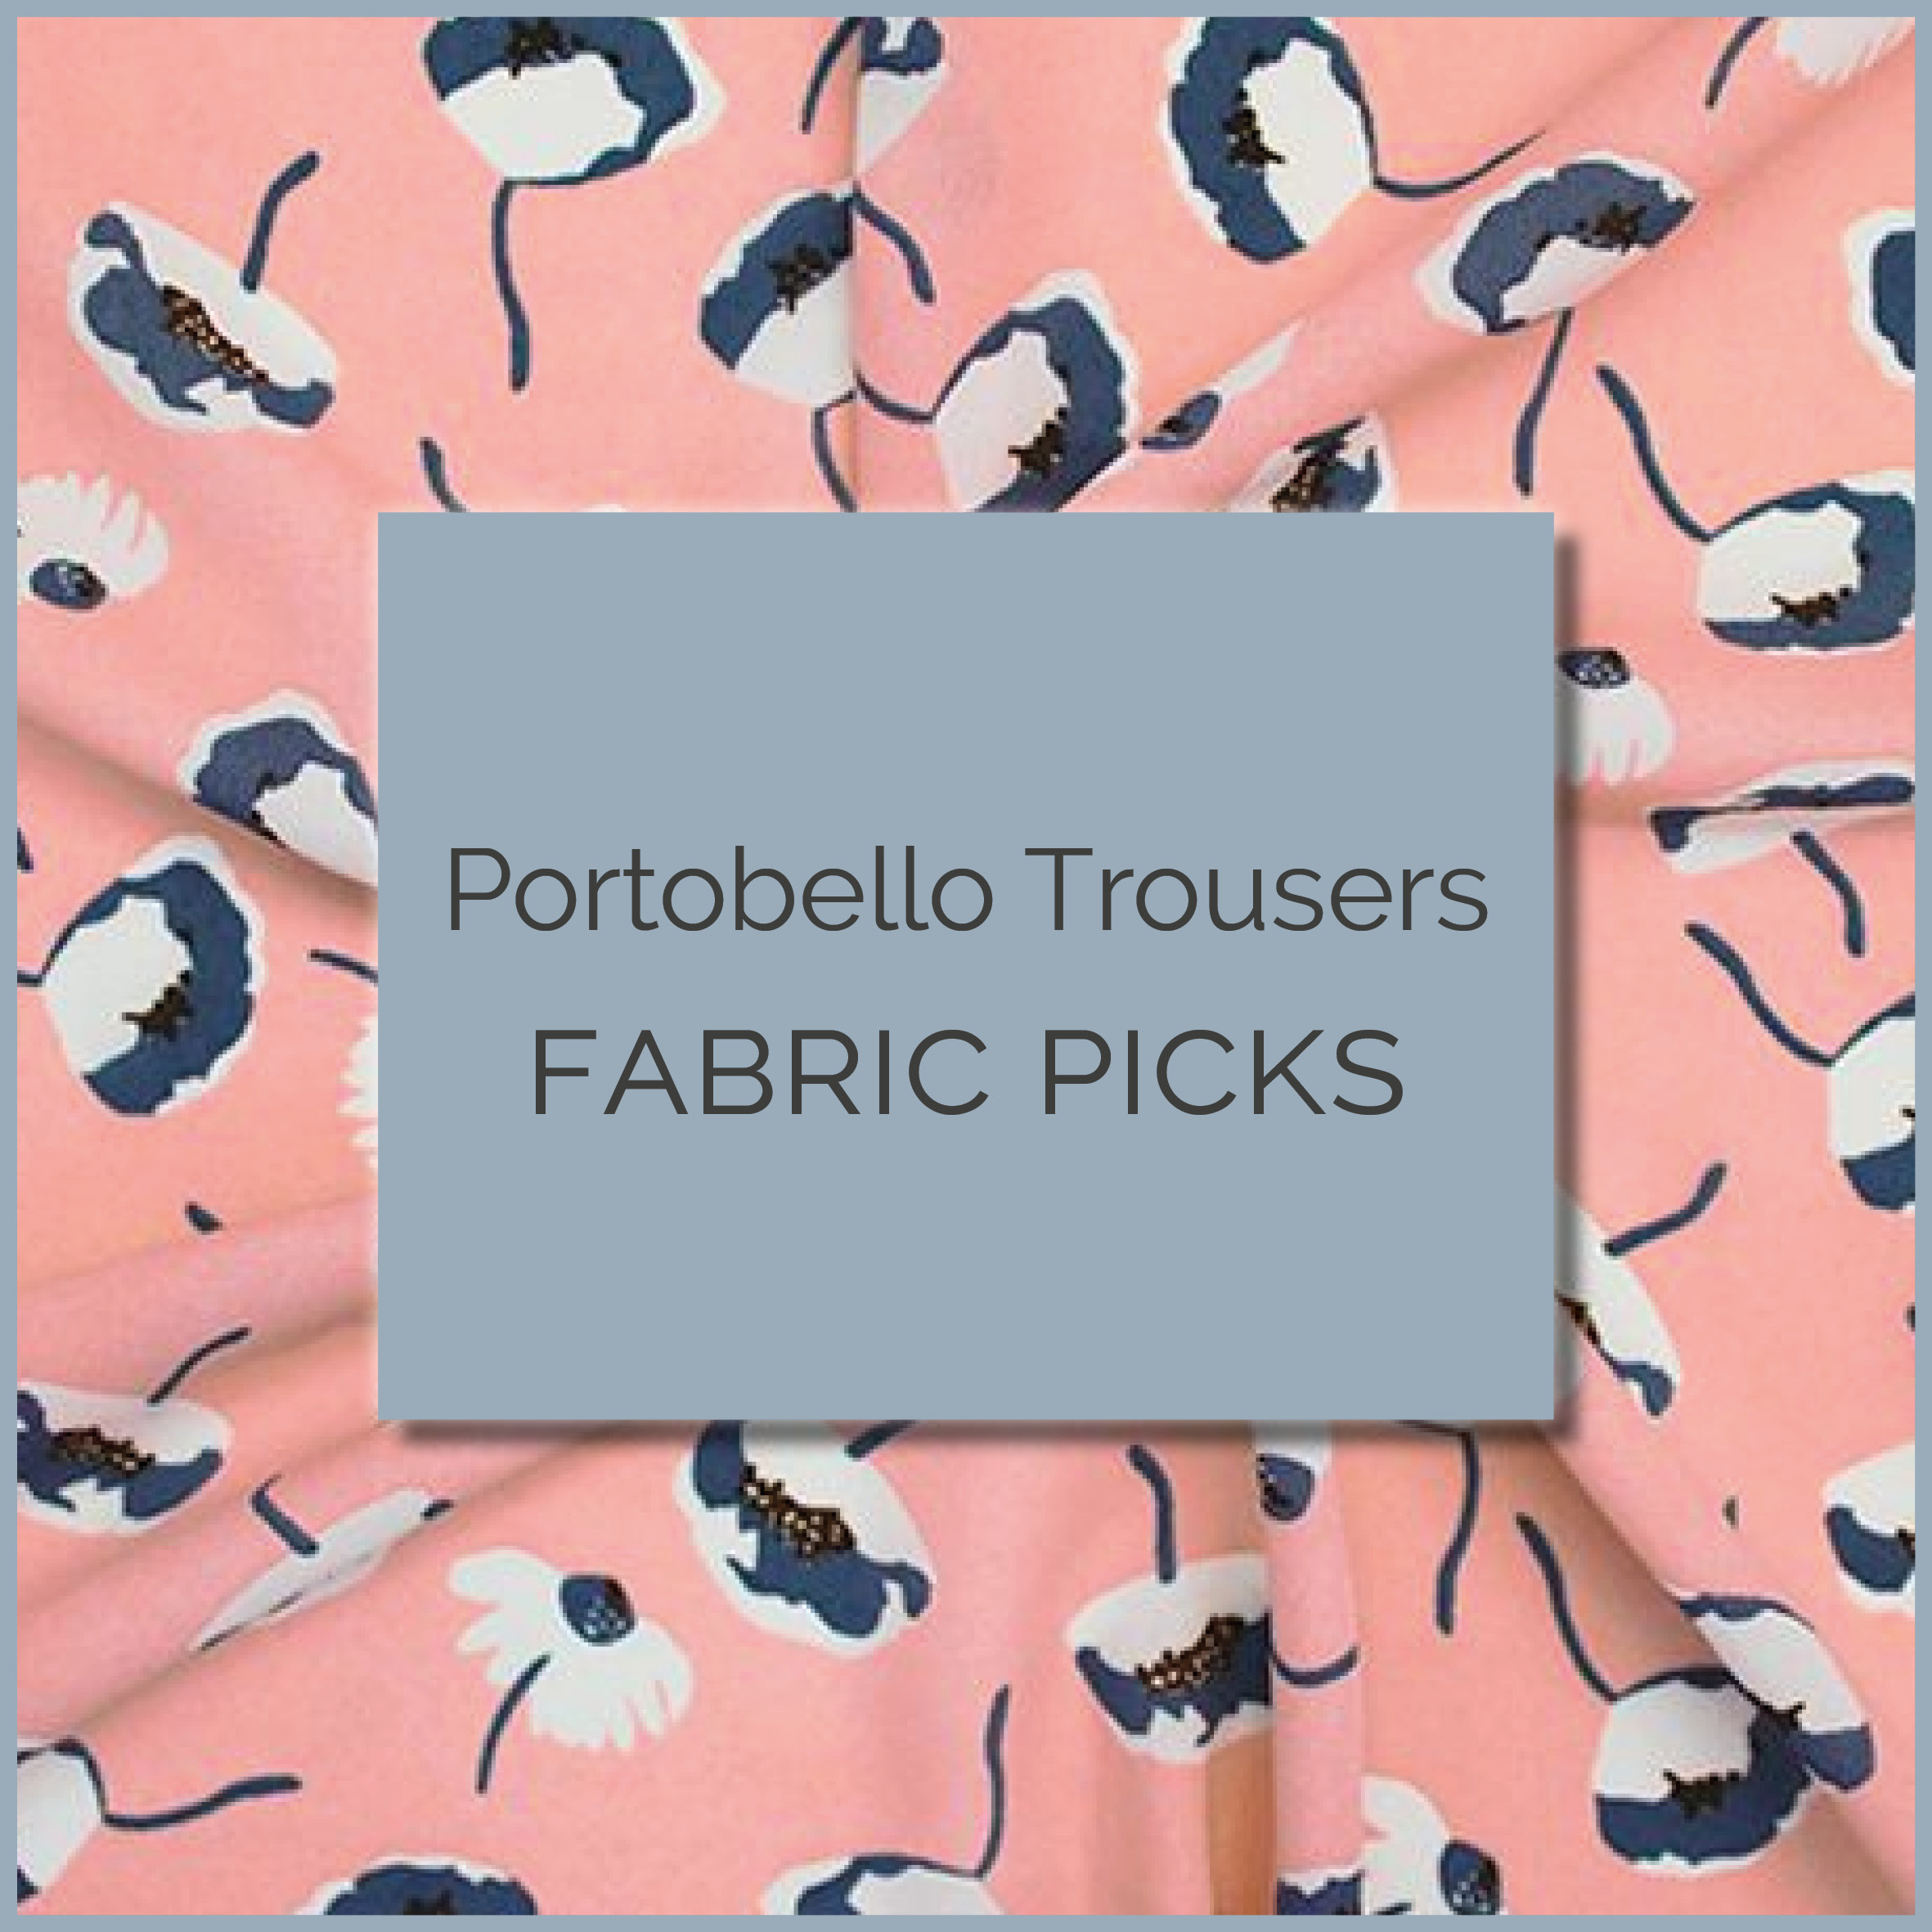 Portobello Trouser fabric picks blog header